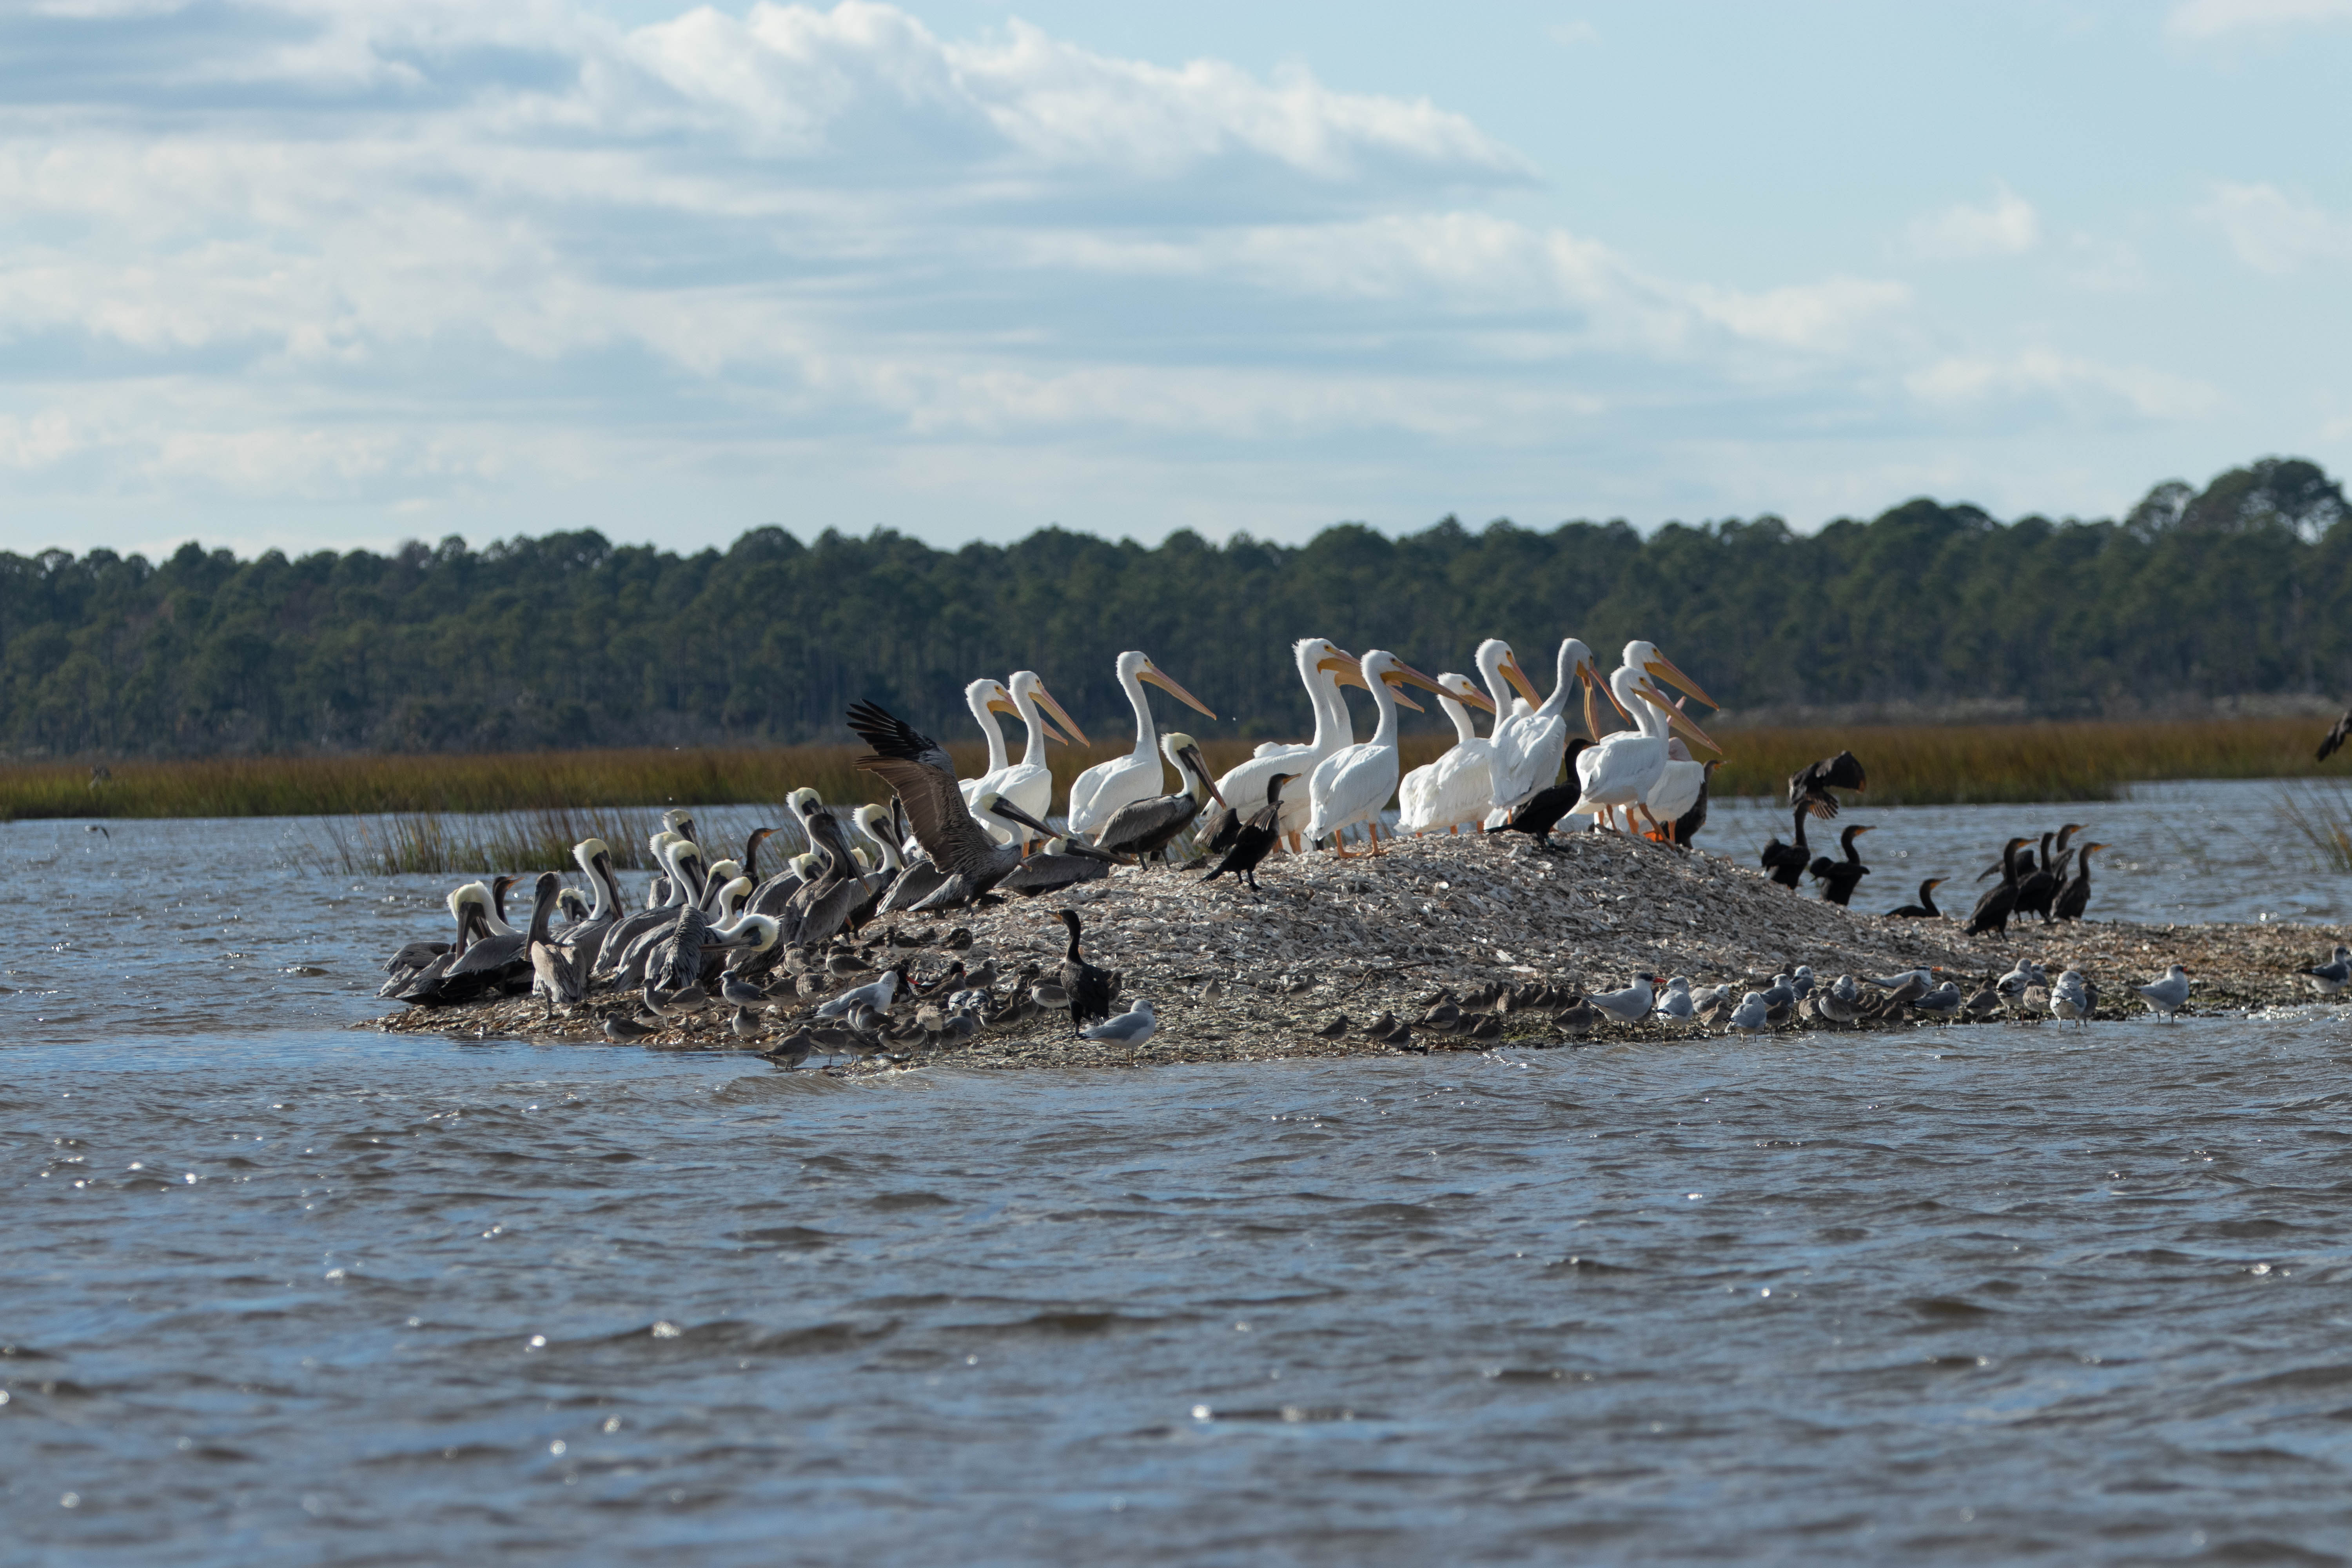 White Pelicans, brown pelicans, cormorants, and other shorebirds.